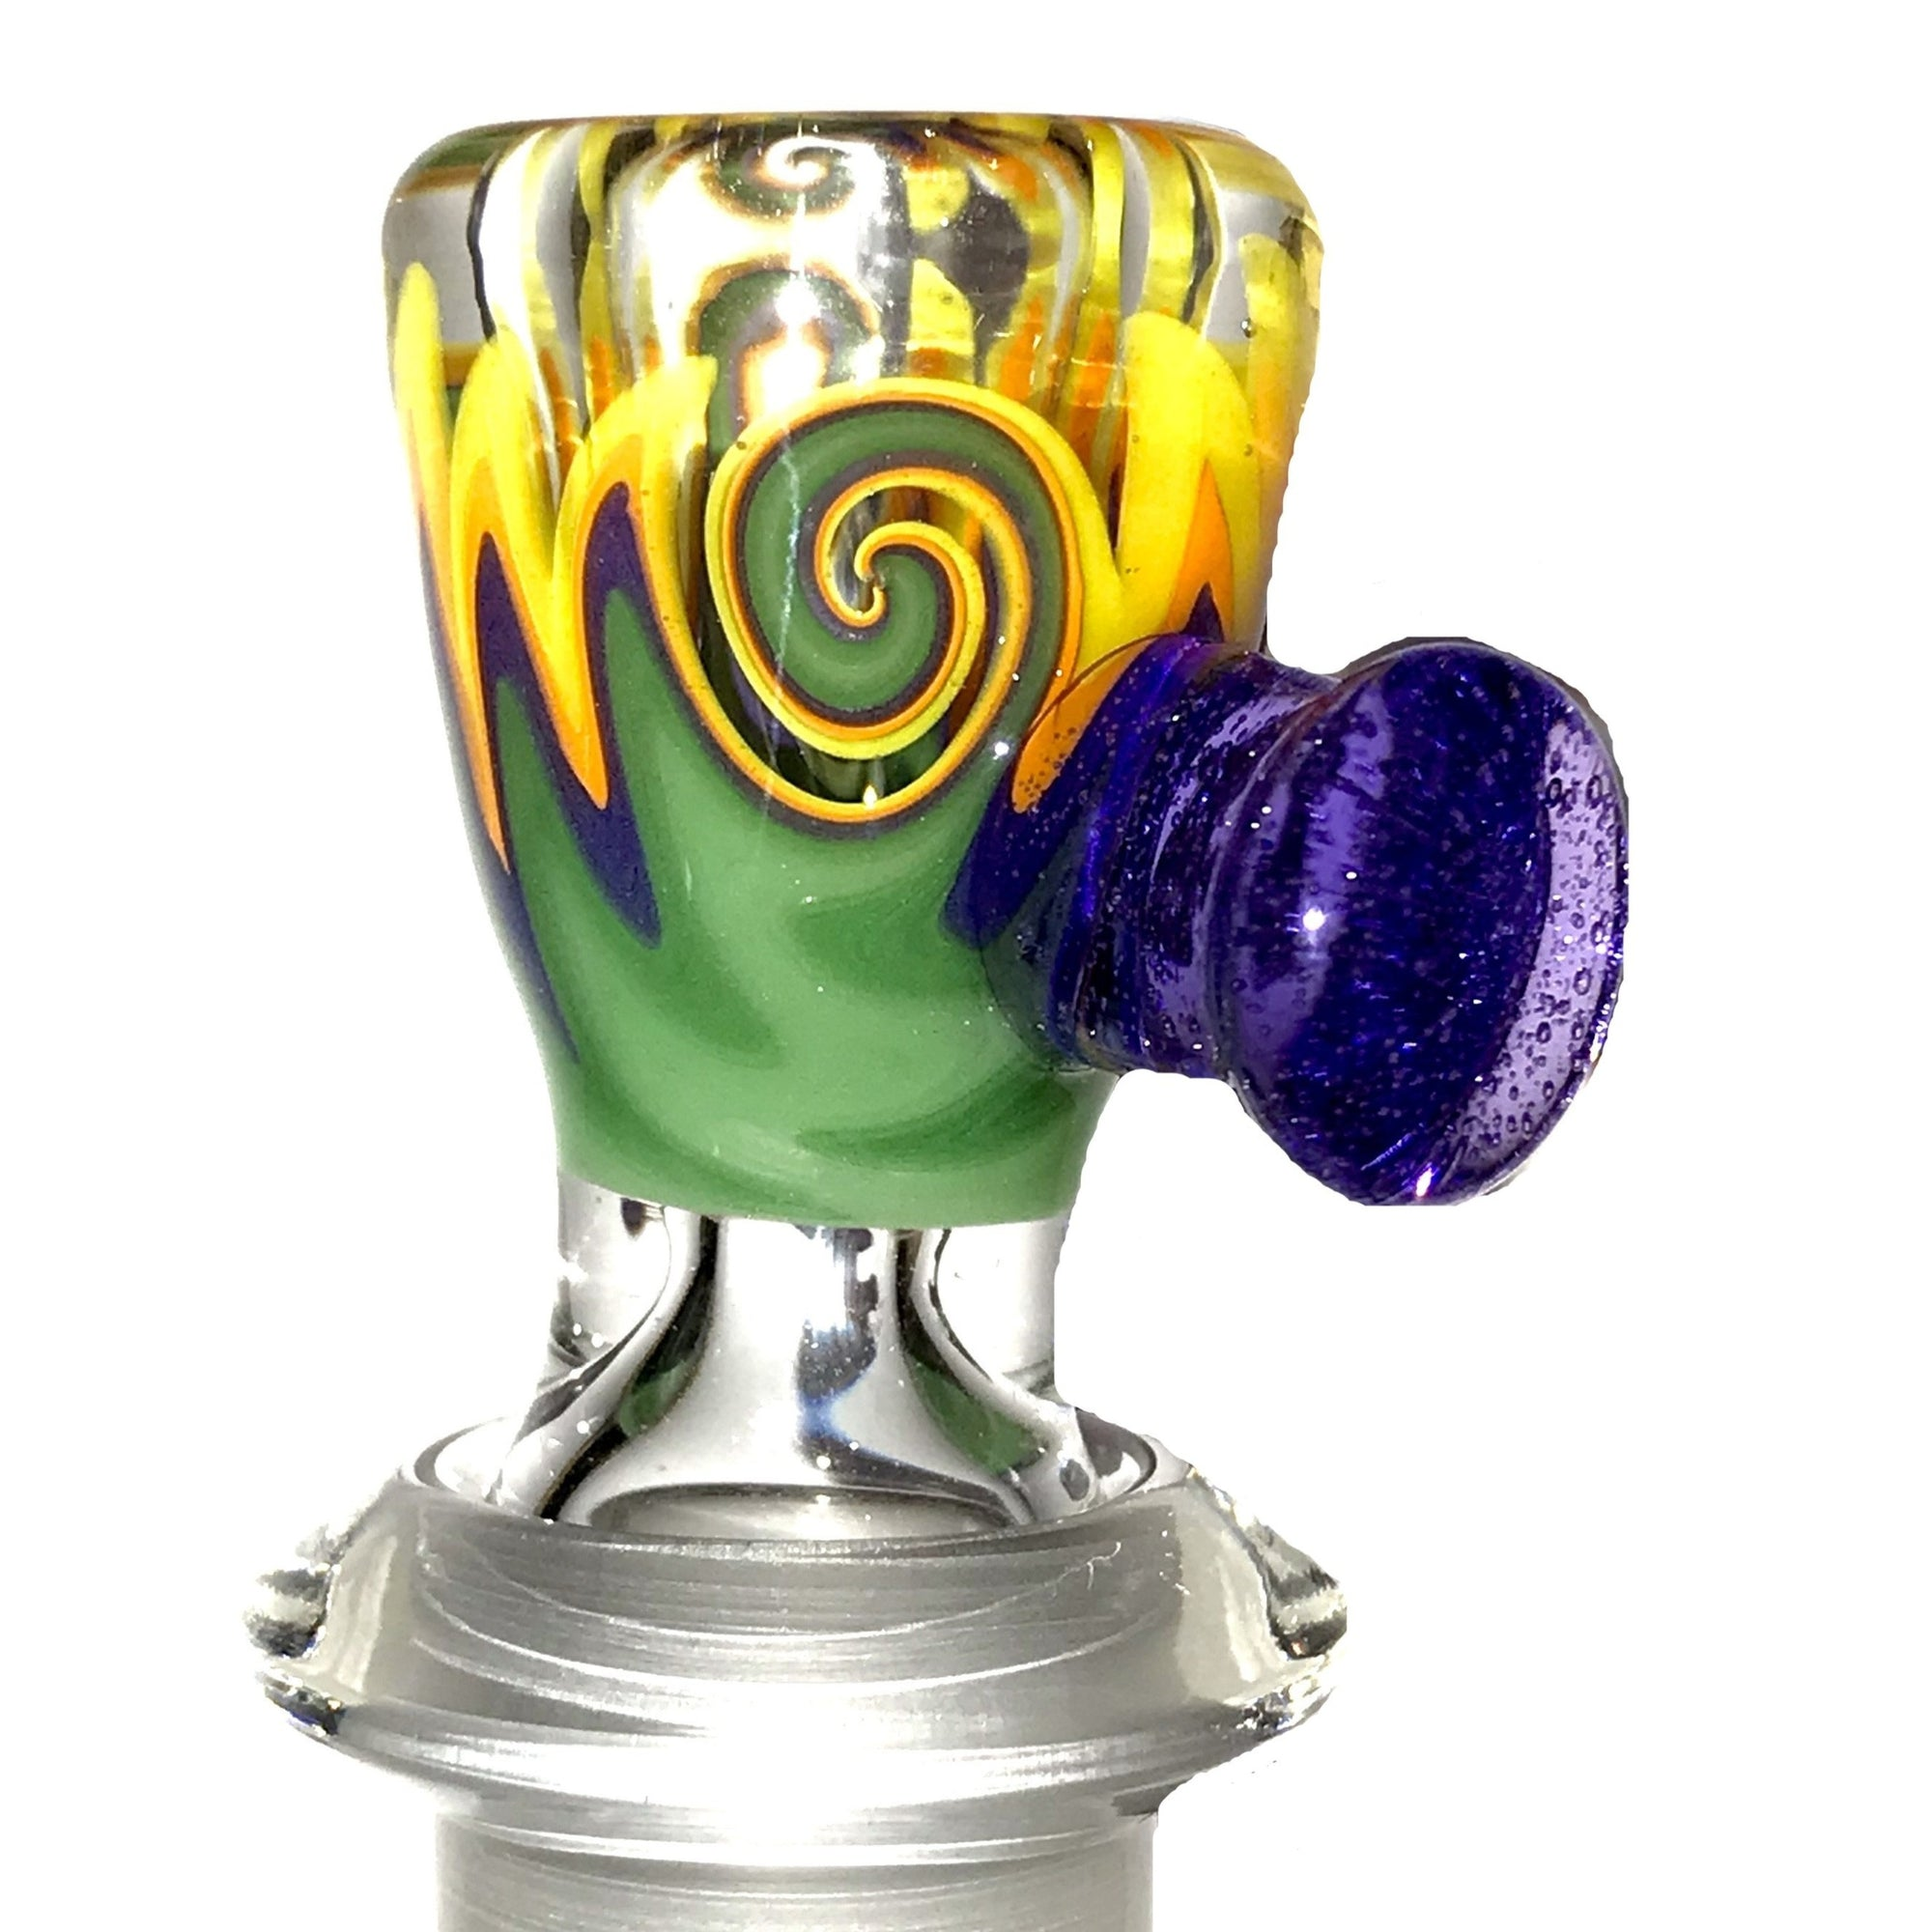 qfactorglass 18/14mm Custom Linework Downstem & Slide Set (Green/Purple/Orange/Yellow) 6 Inches In Length